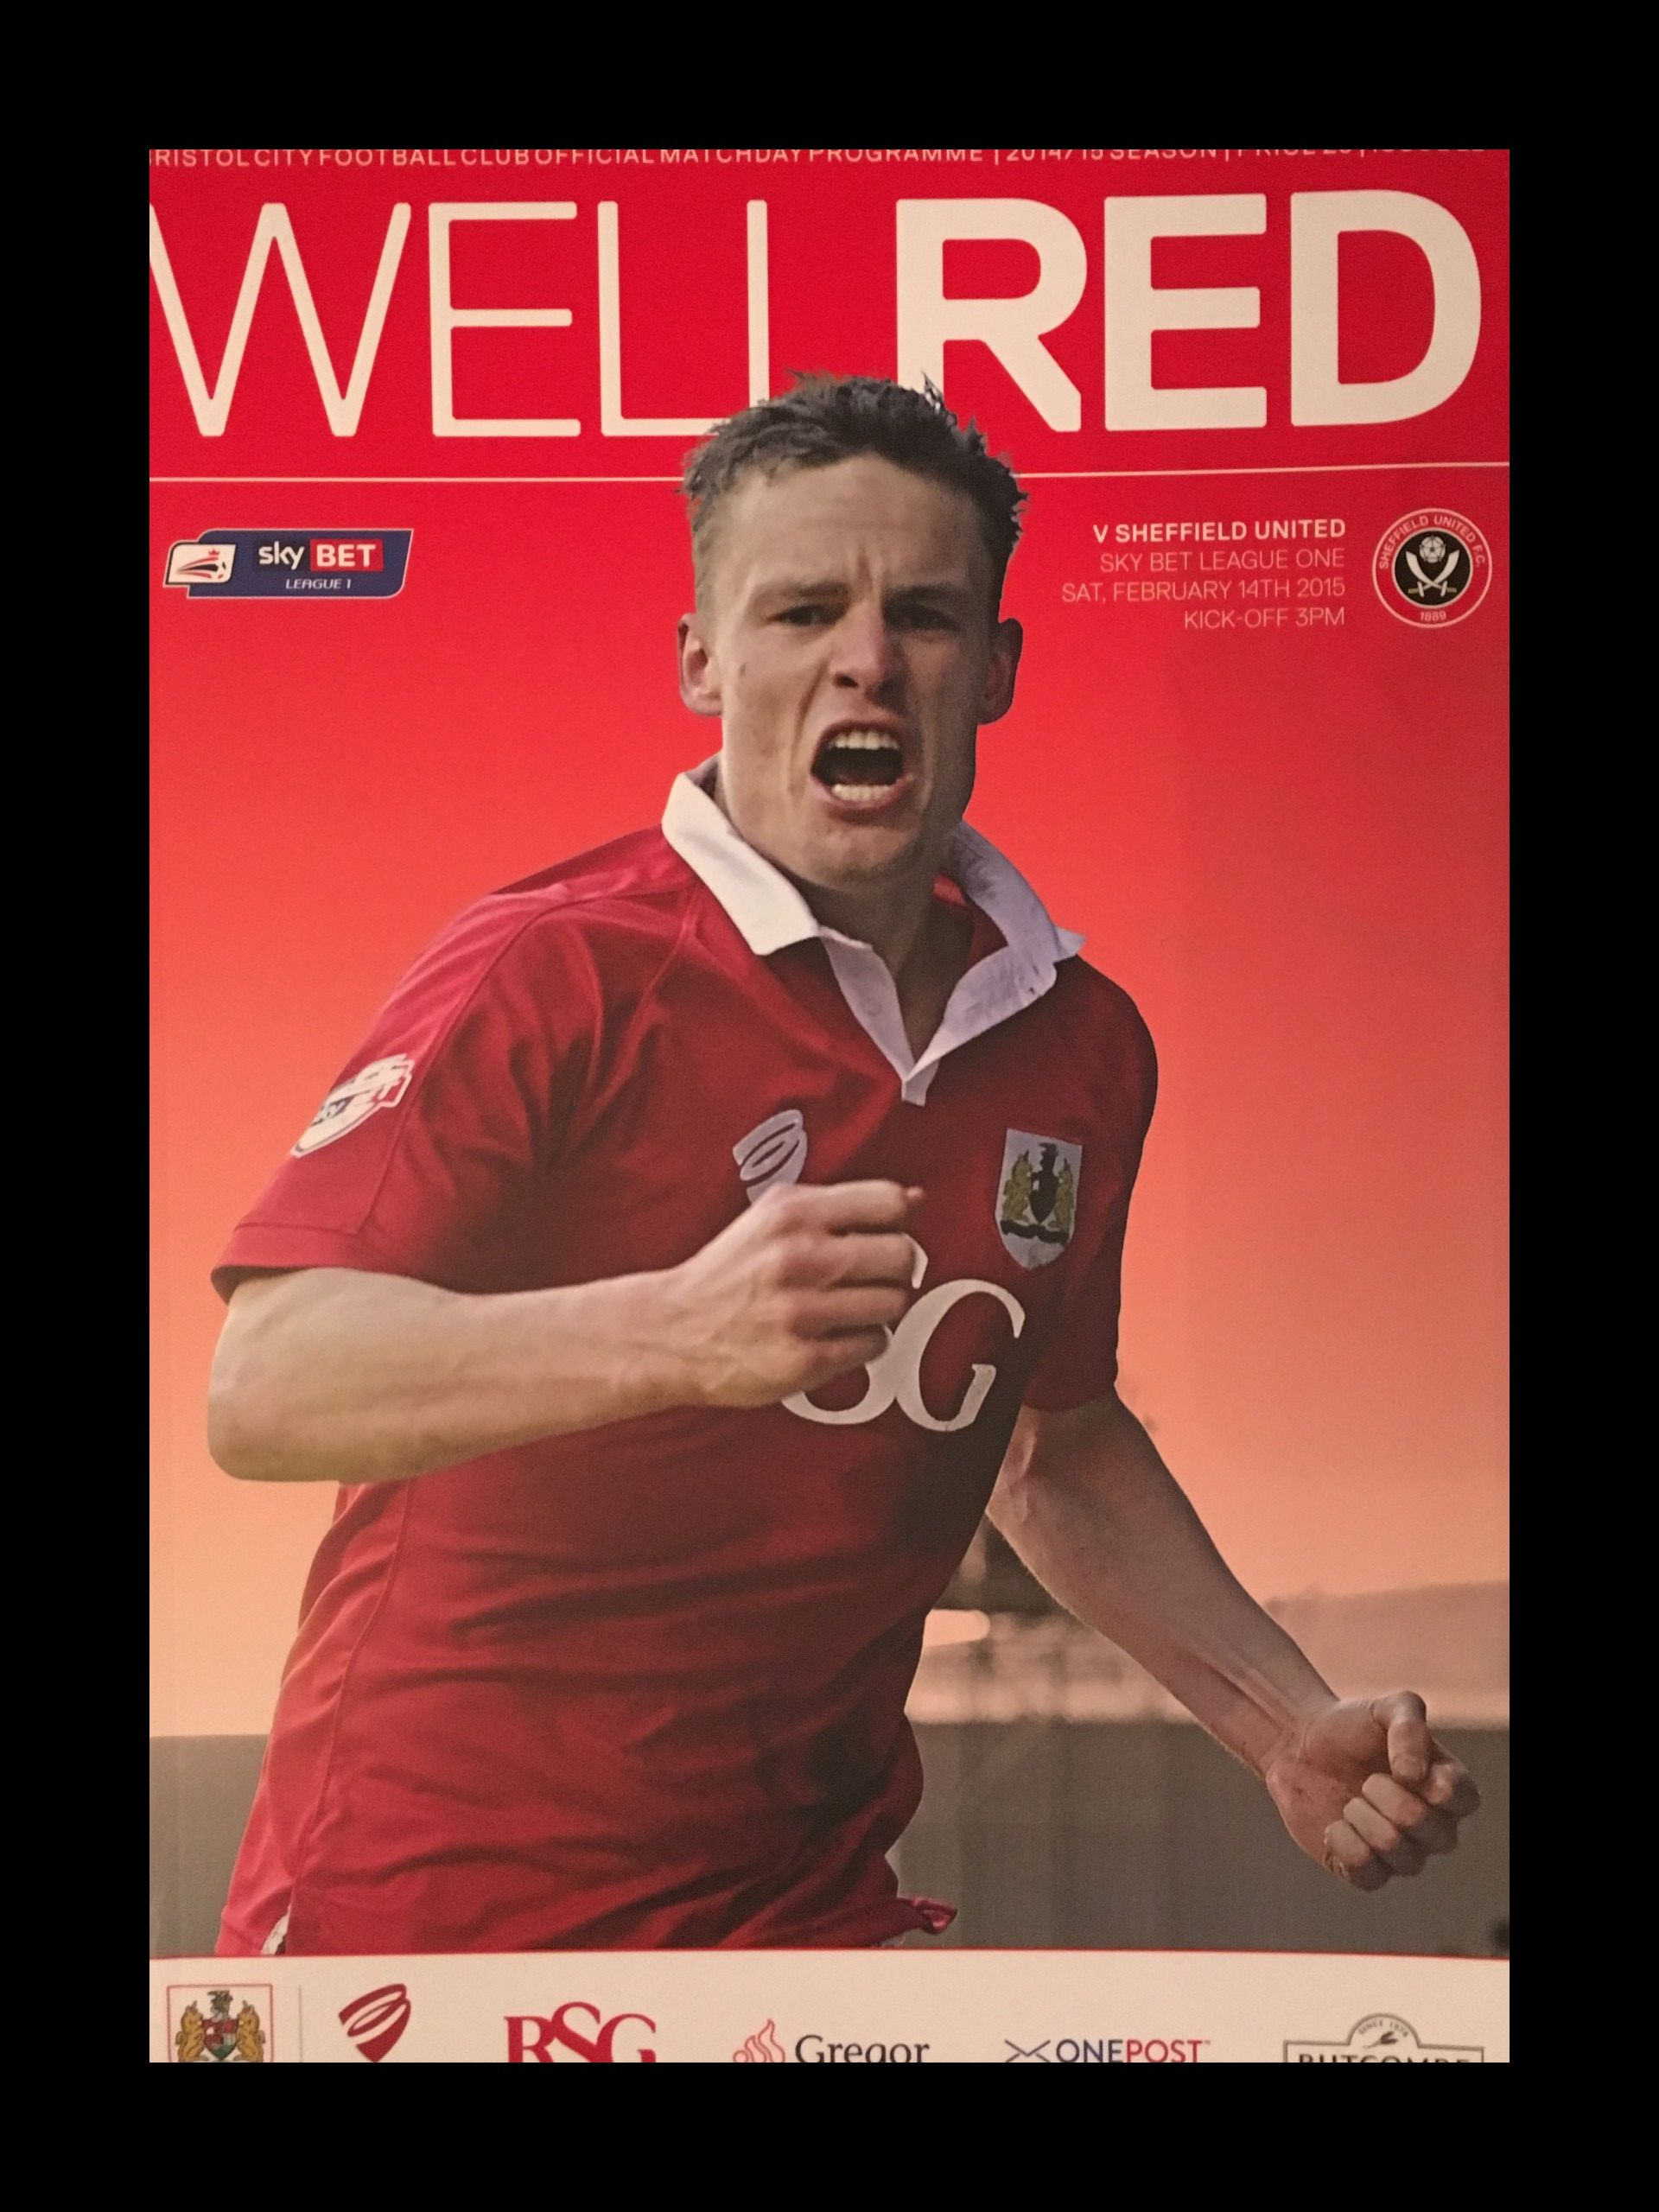 Bristol City v Sheffield United 14-02-2015 Programme